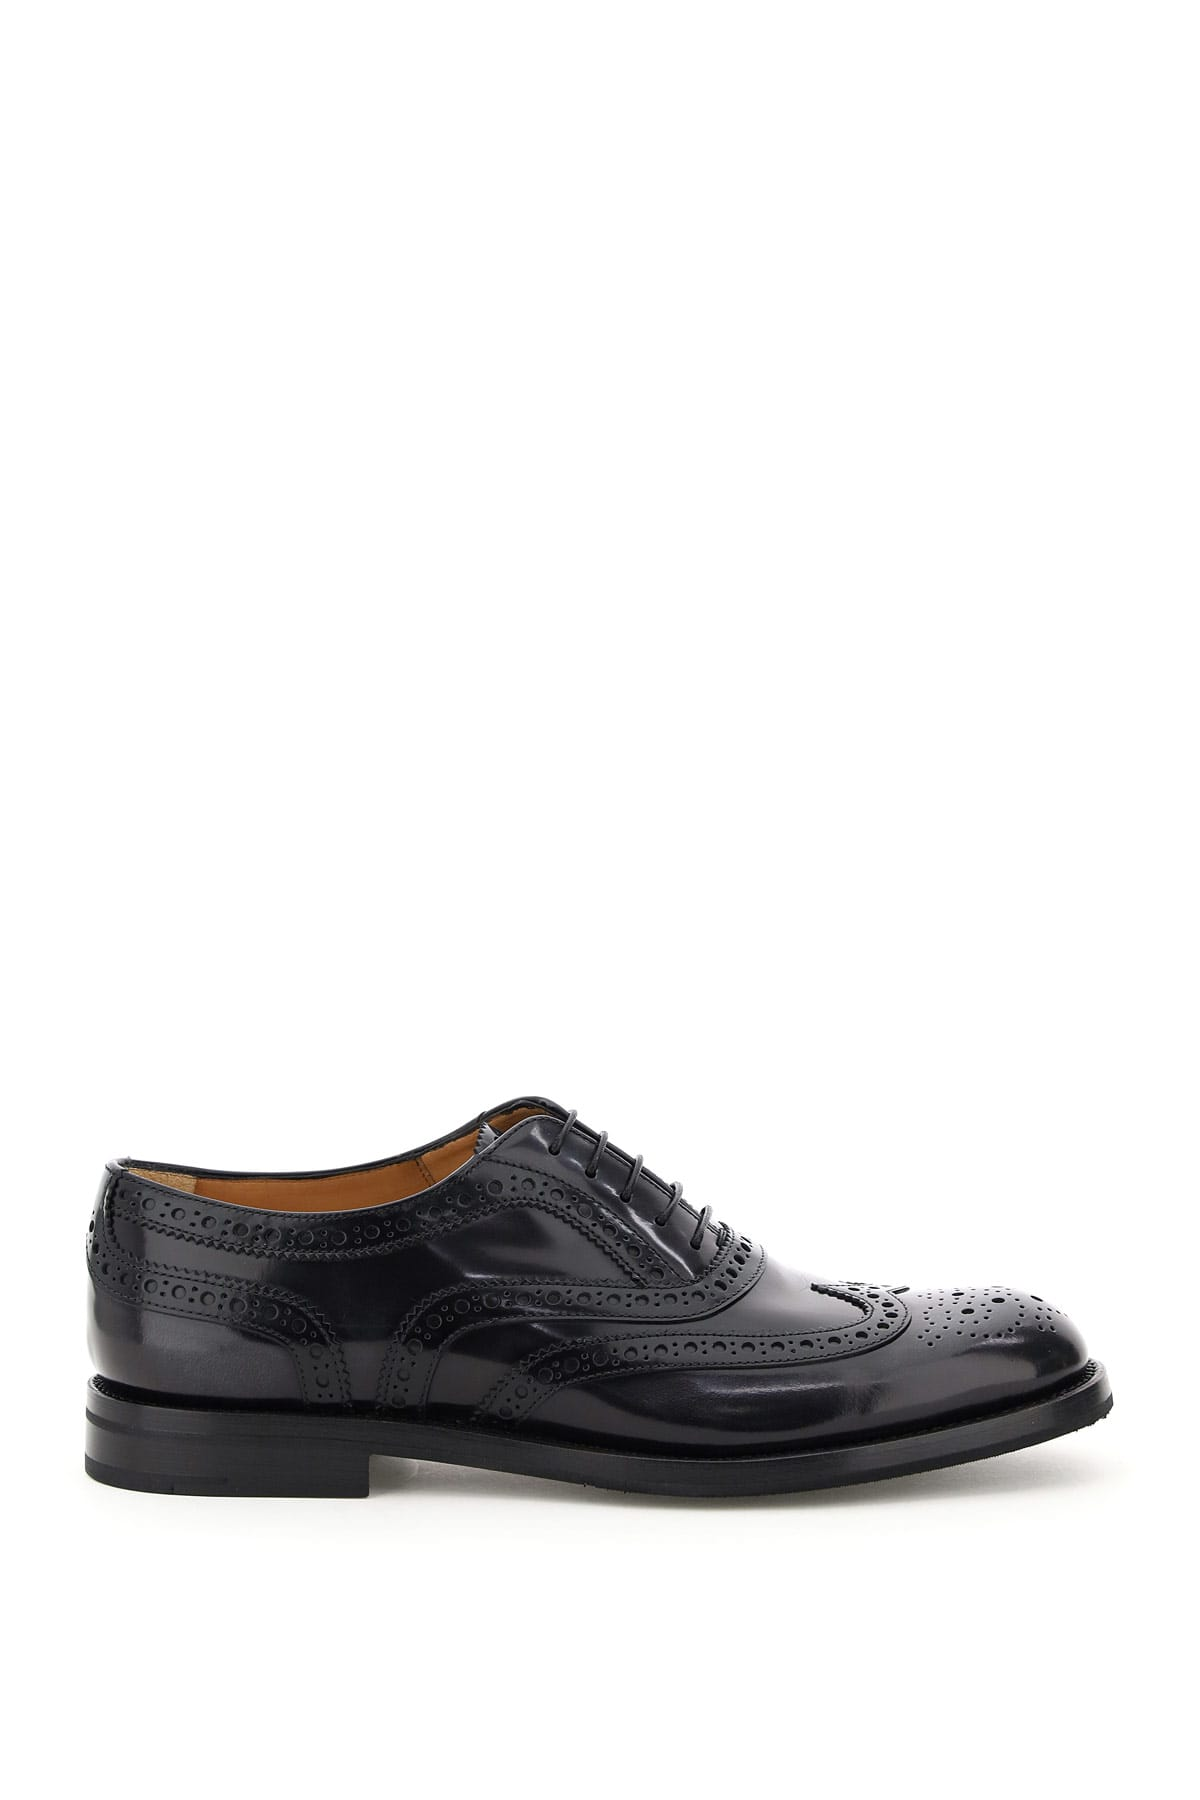 Church's BURWOOD 5 BROGUE SHOES